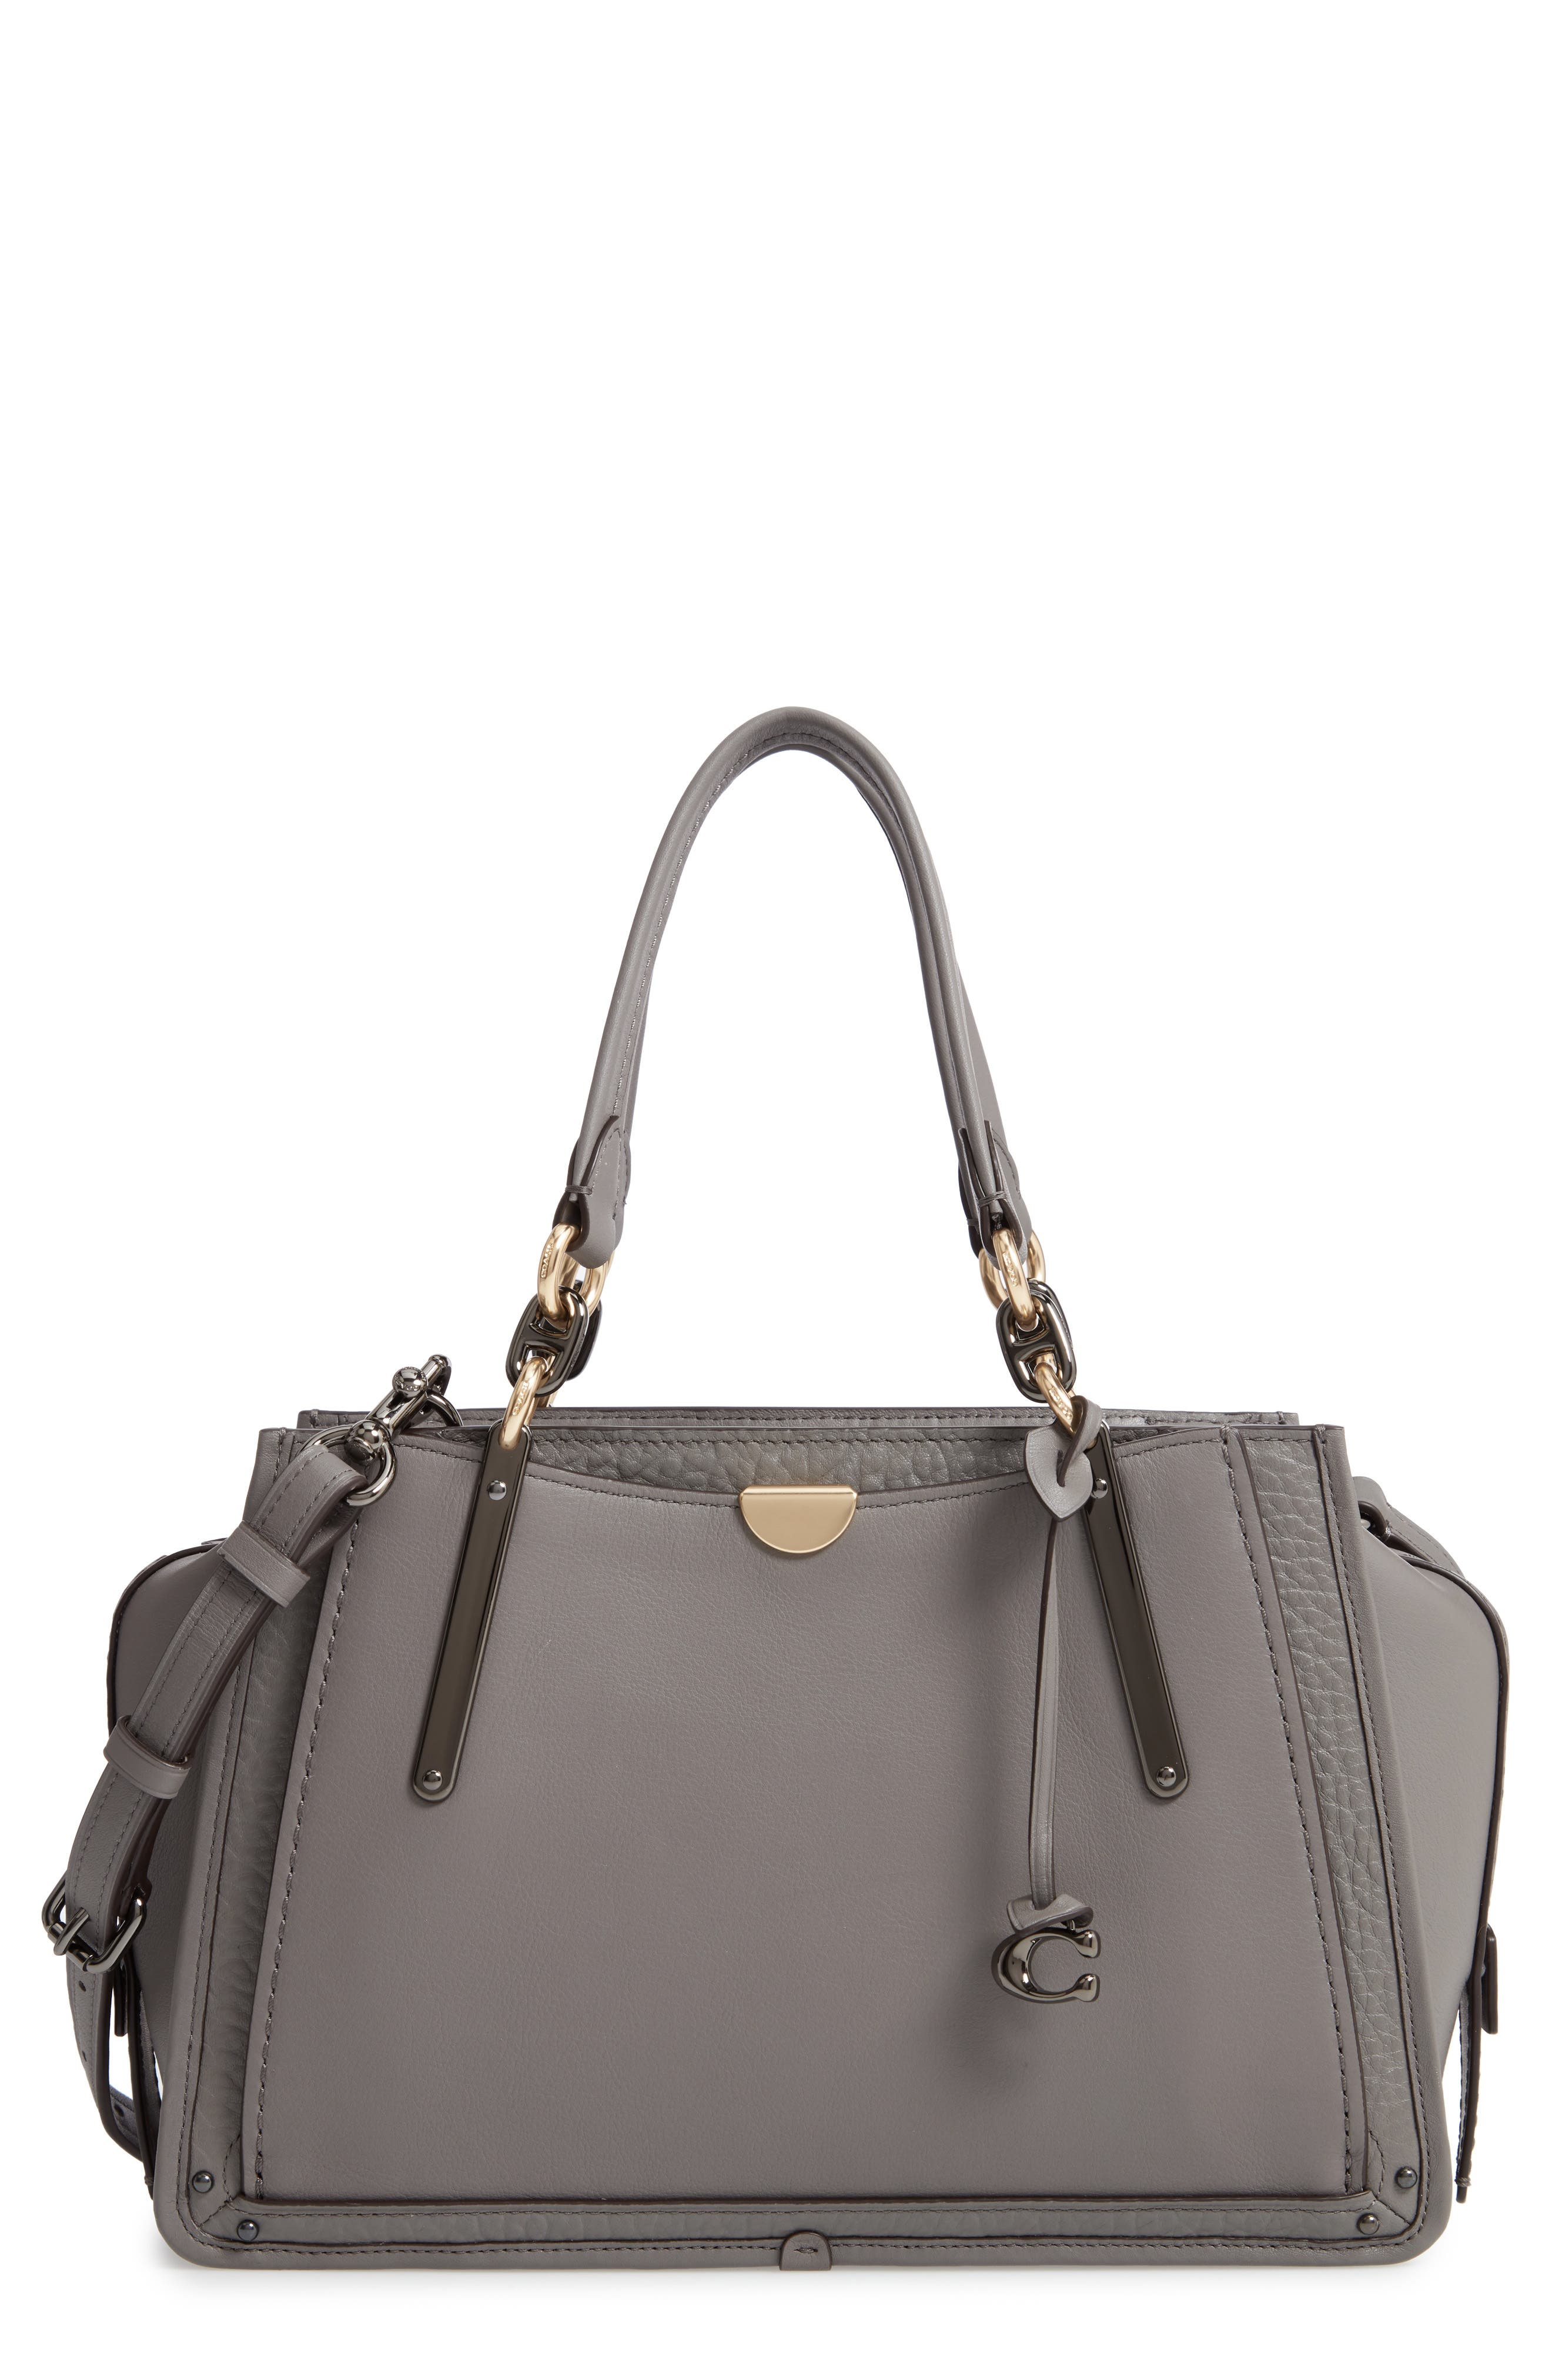 Dreamer Mixed Leather Bag,                             Main thumbnail 1, color,                             HEATHER GREY